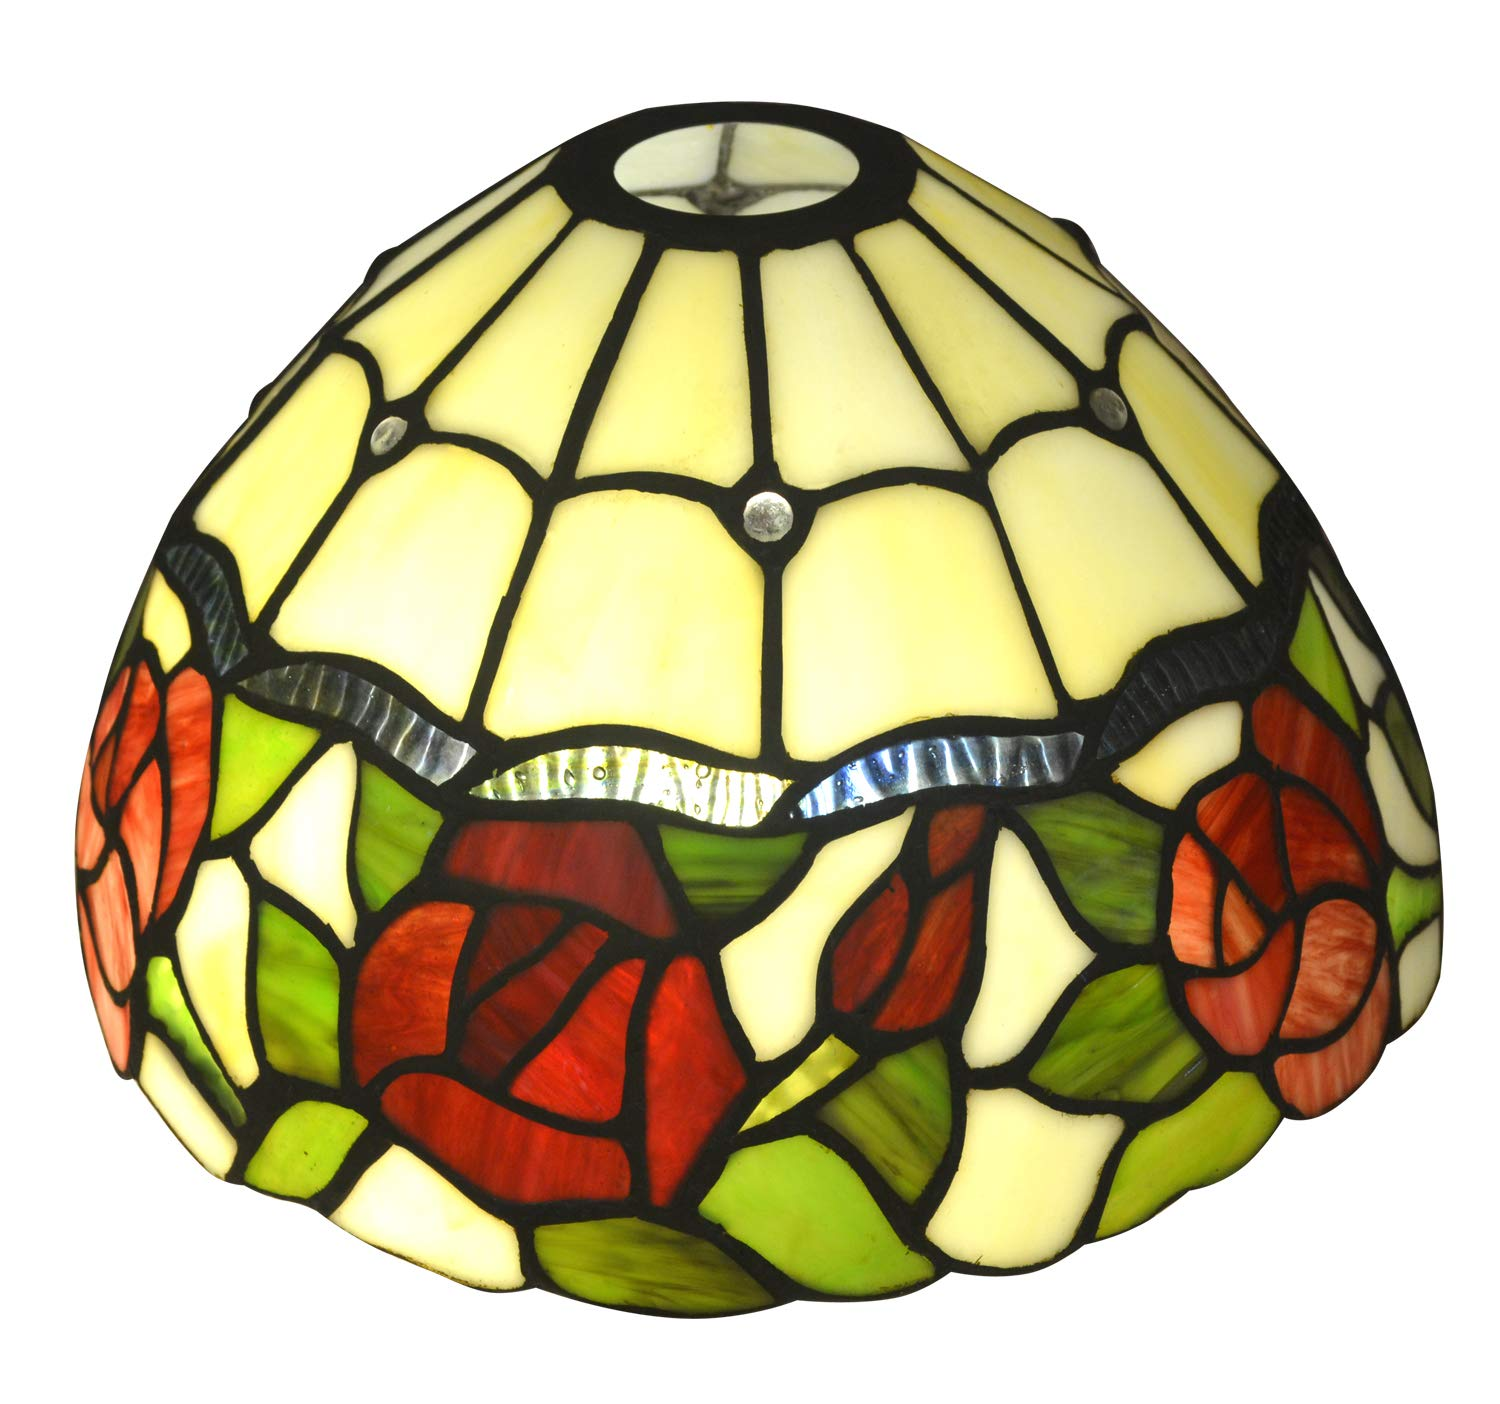 NOSHY SH-035 Premium Rose Flower Tiffany Lamp Shades, Multi-Colored, 10-Inch Width, Pack of 1